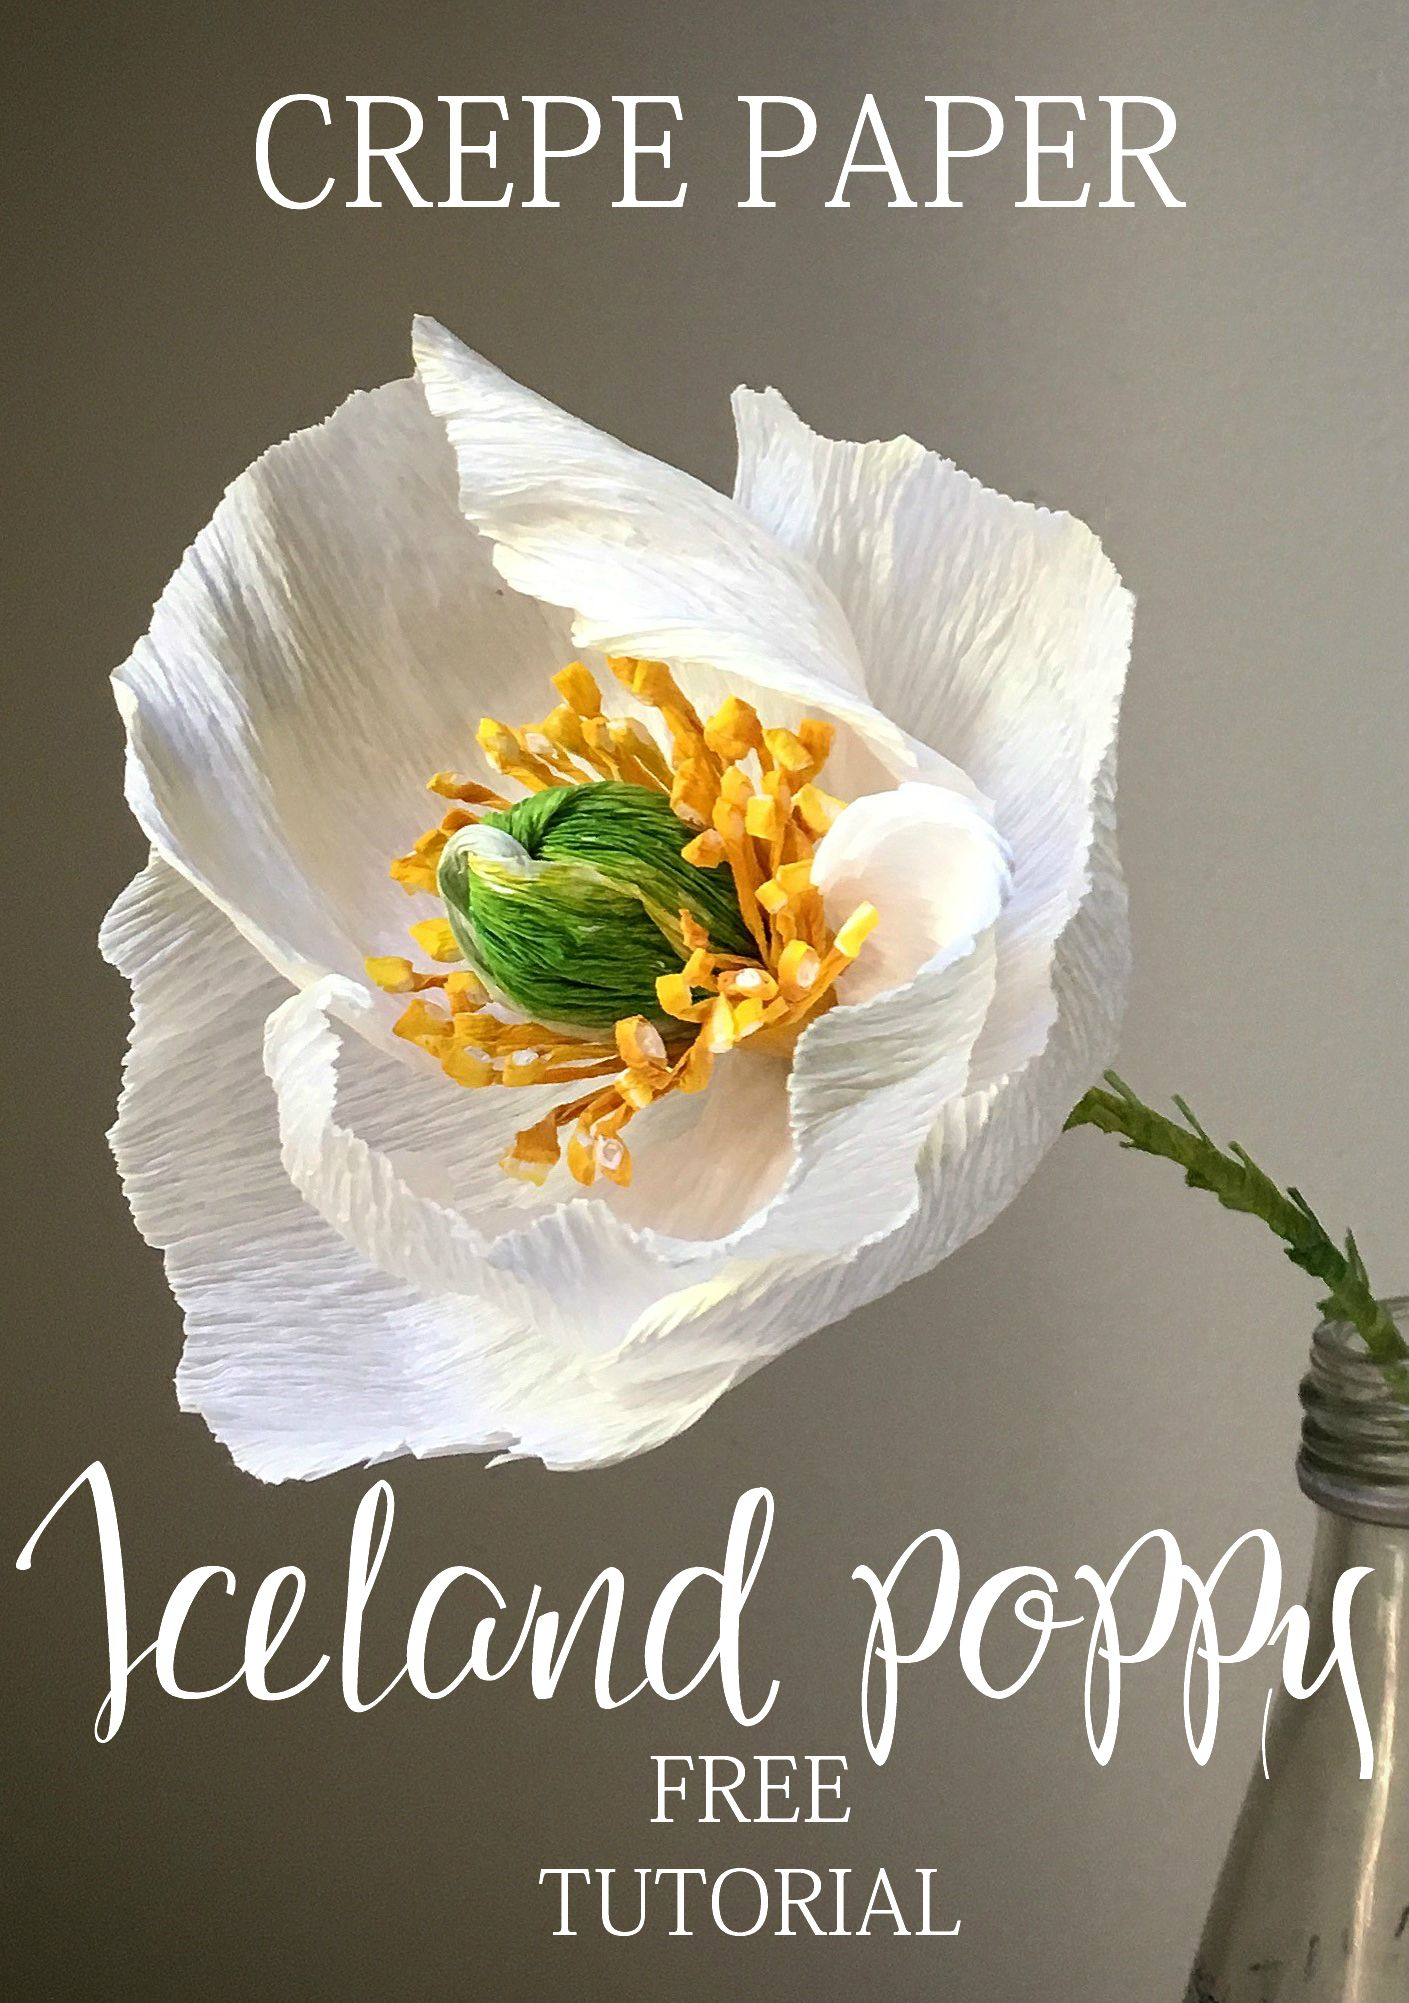 Crepe paper Iceland poppy – are you ready to try? - The Paper Heart